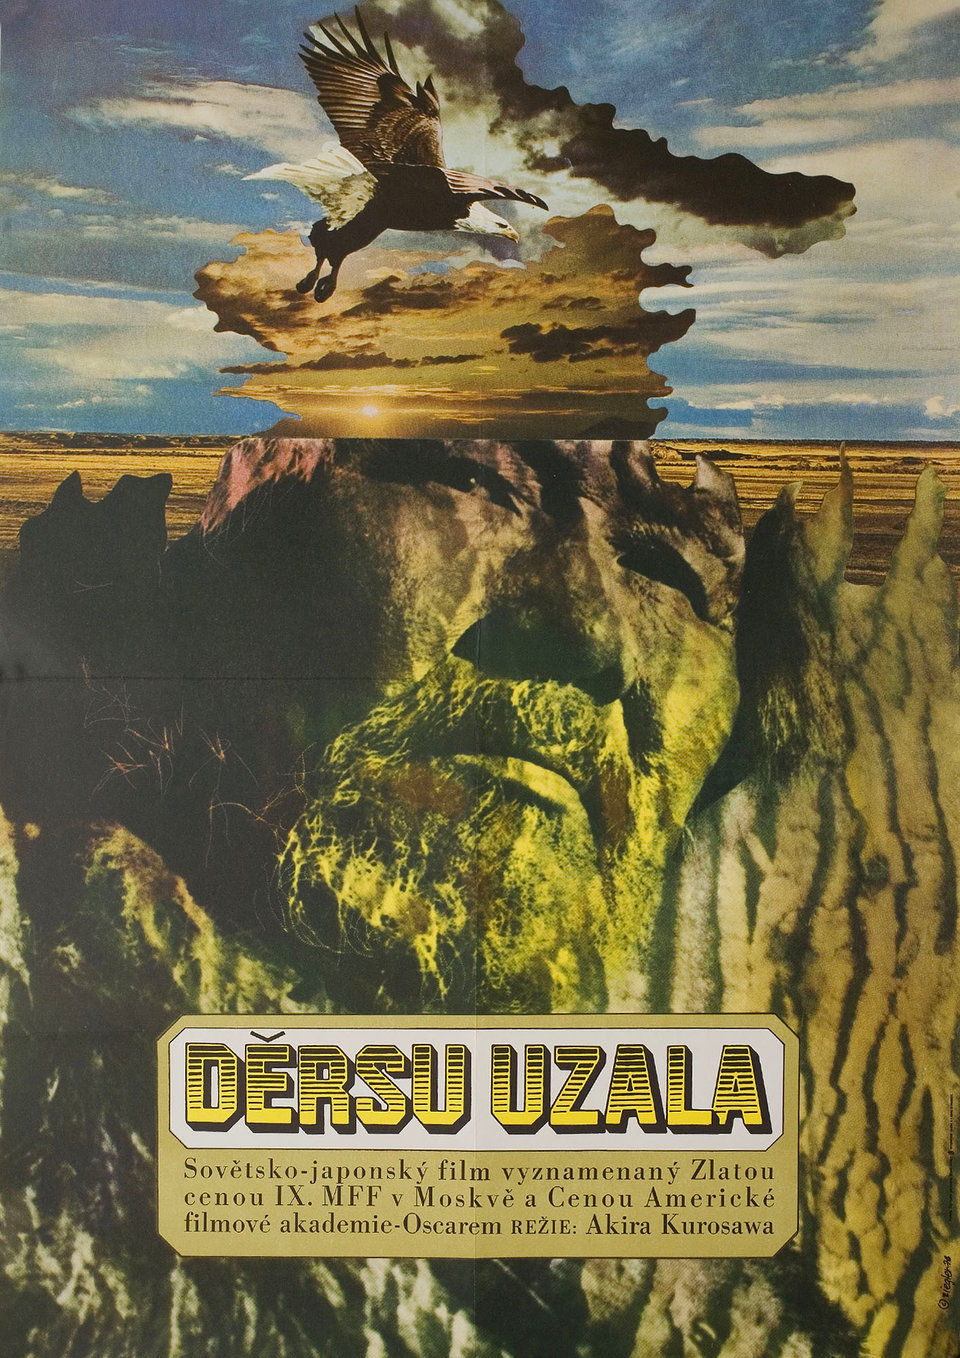 Dersu Uzala 1976 Original Czech Republic Movie Poster